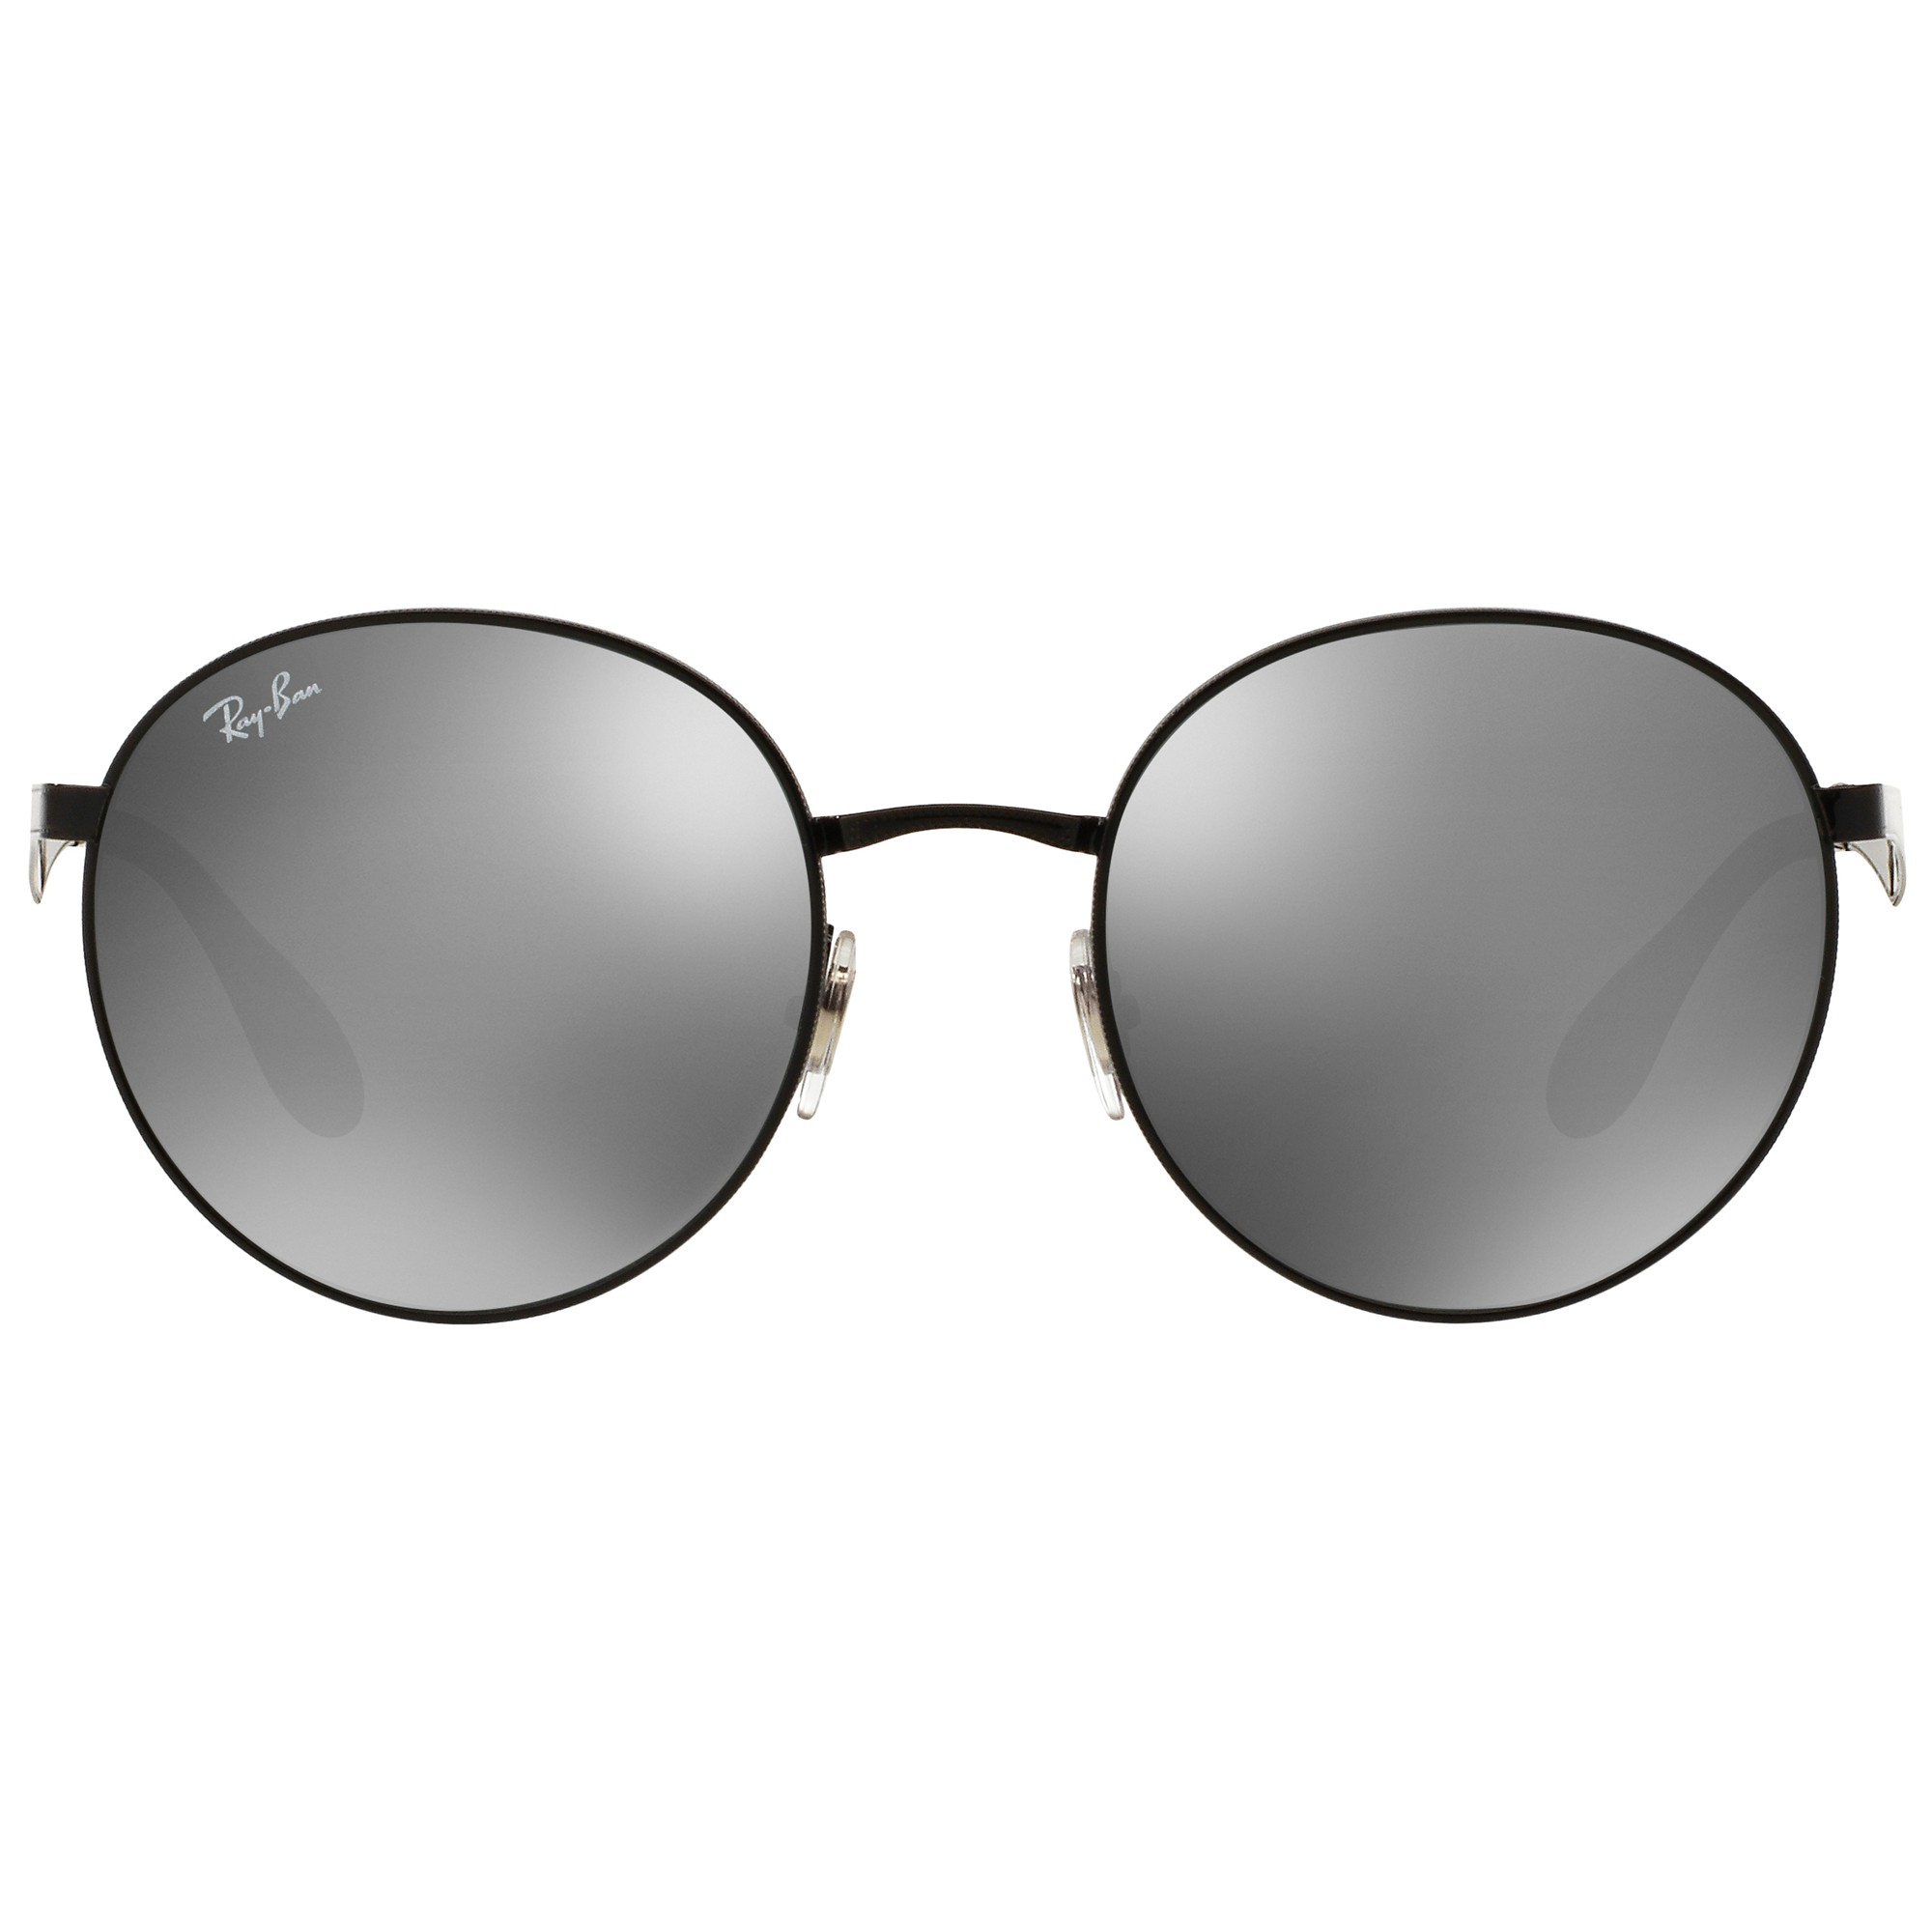 131c897d68 Ray-Ban Rb3537 Highstreet Round Sunglasses in Black - Lyst